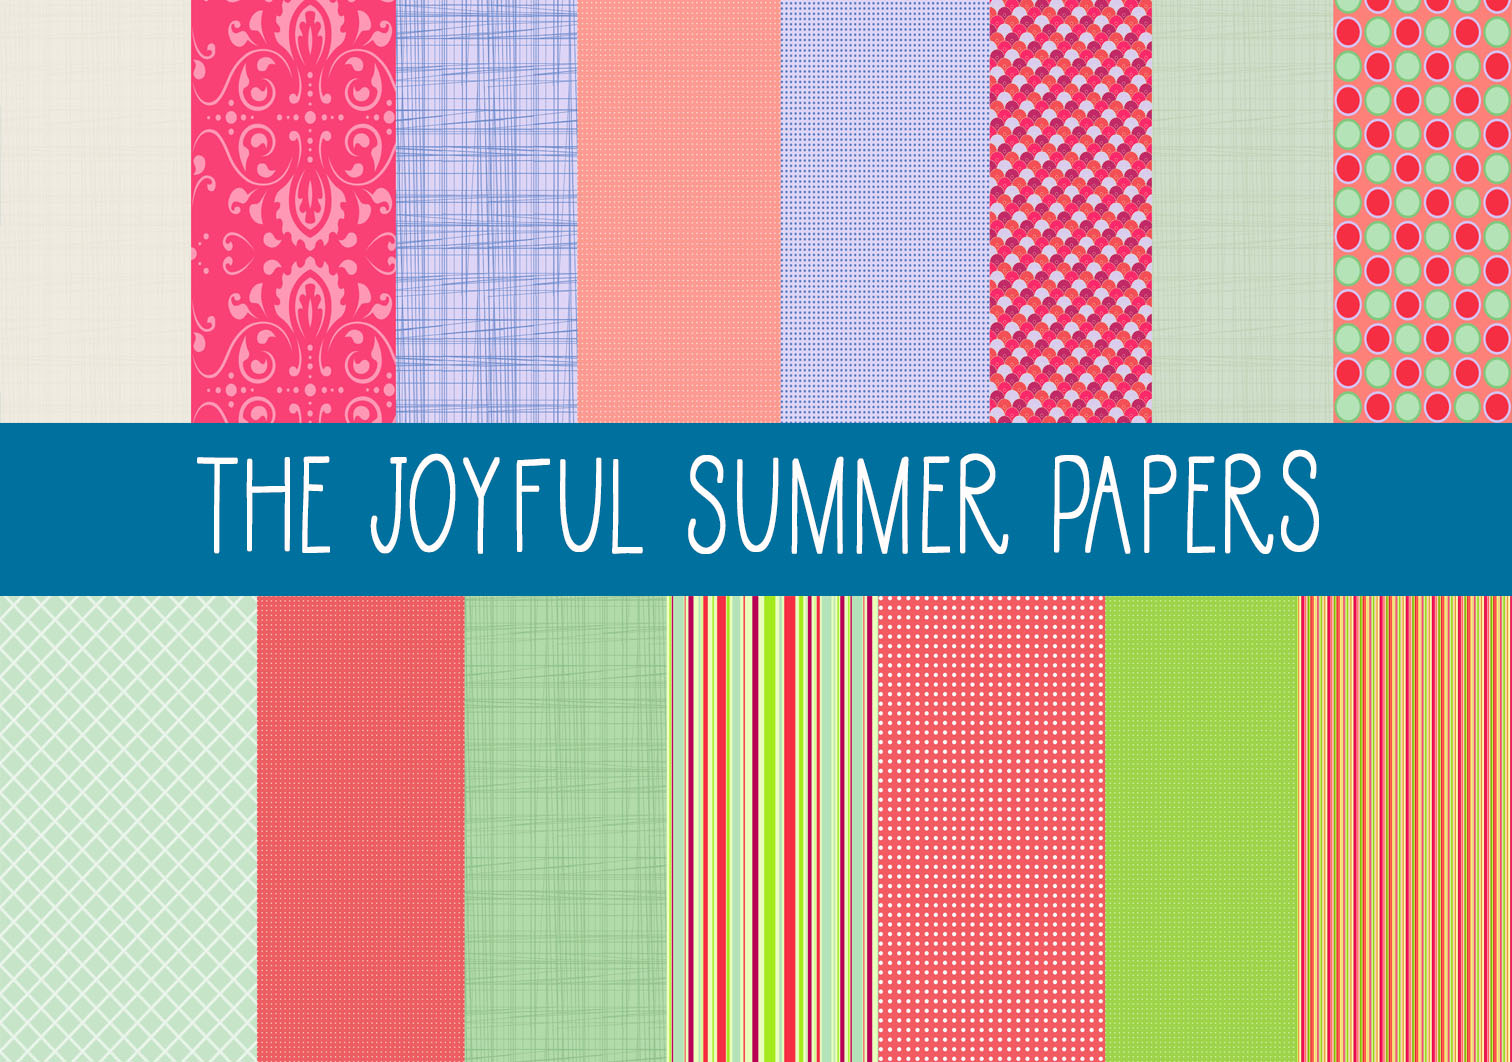 Download Free The Joyful Summer Papers Graphic By Capeairforce Creative Fabrica for Cricut Explore, Silhouette and other cutting machines.